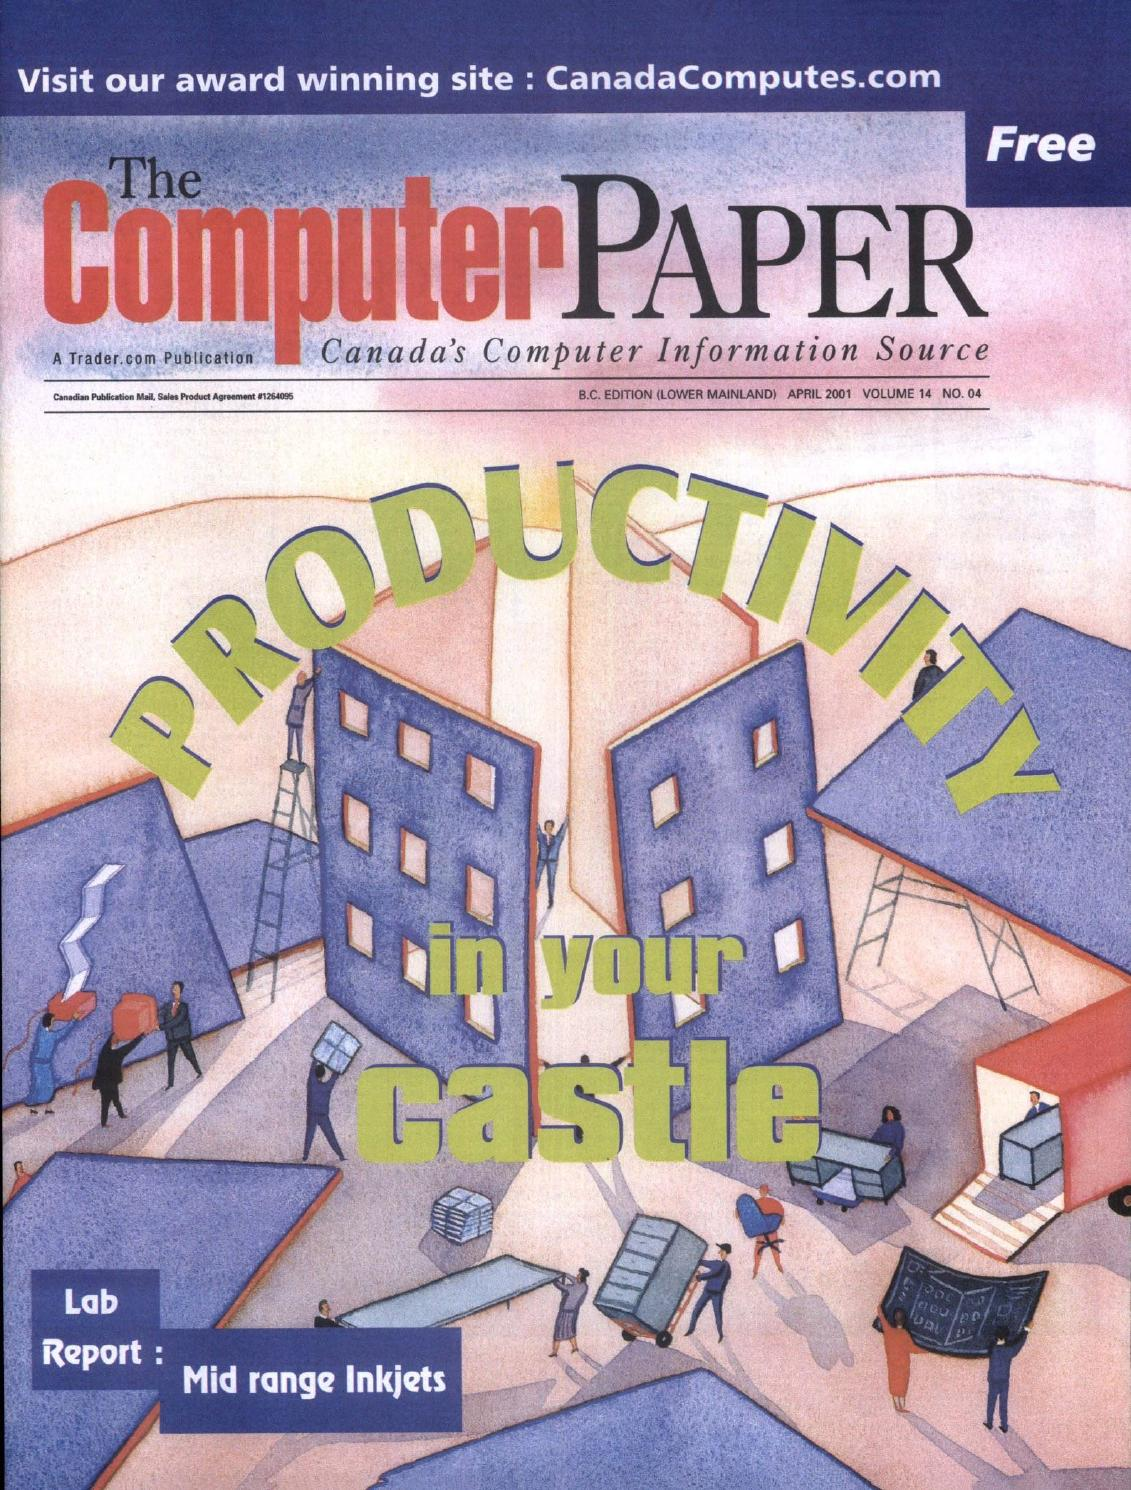 2001 04 The Computer Paper - BC Edition by The Computer